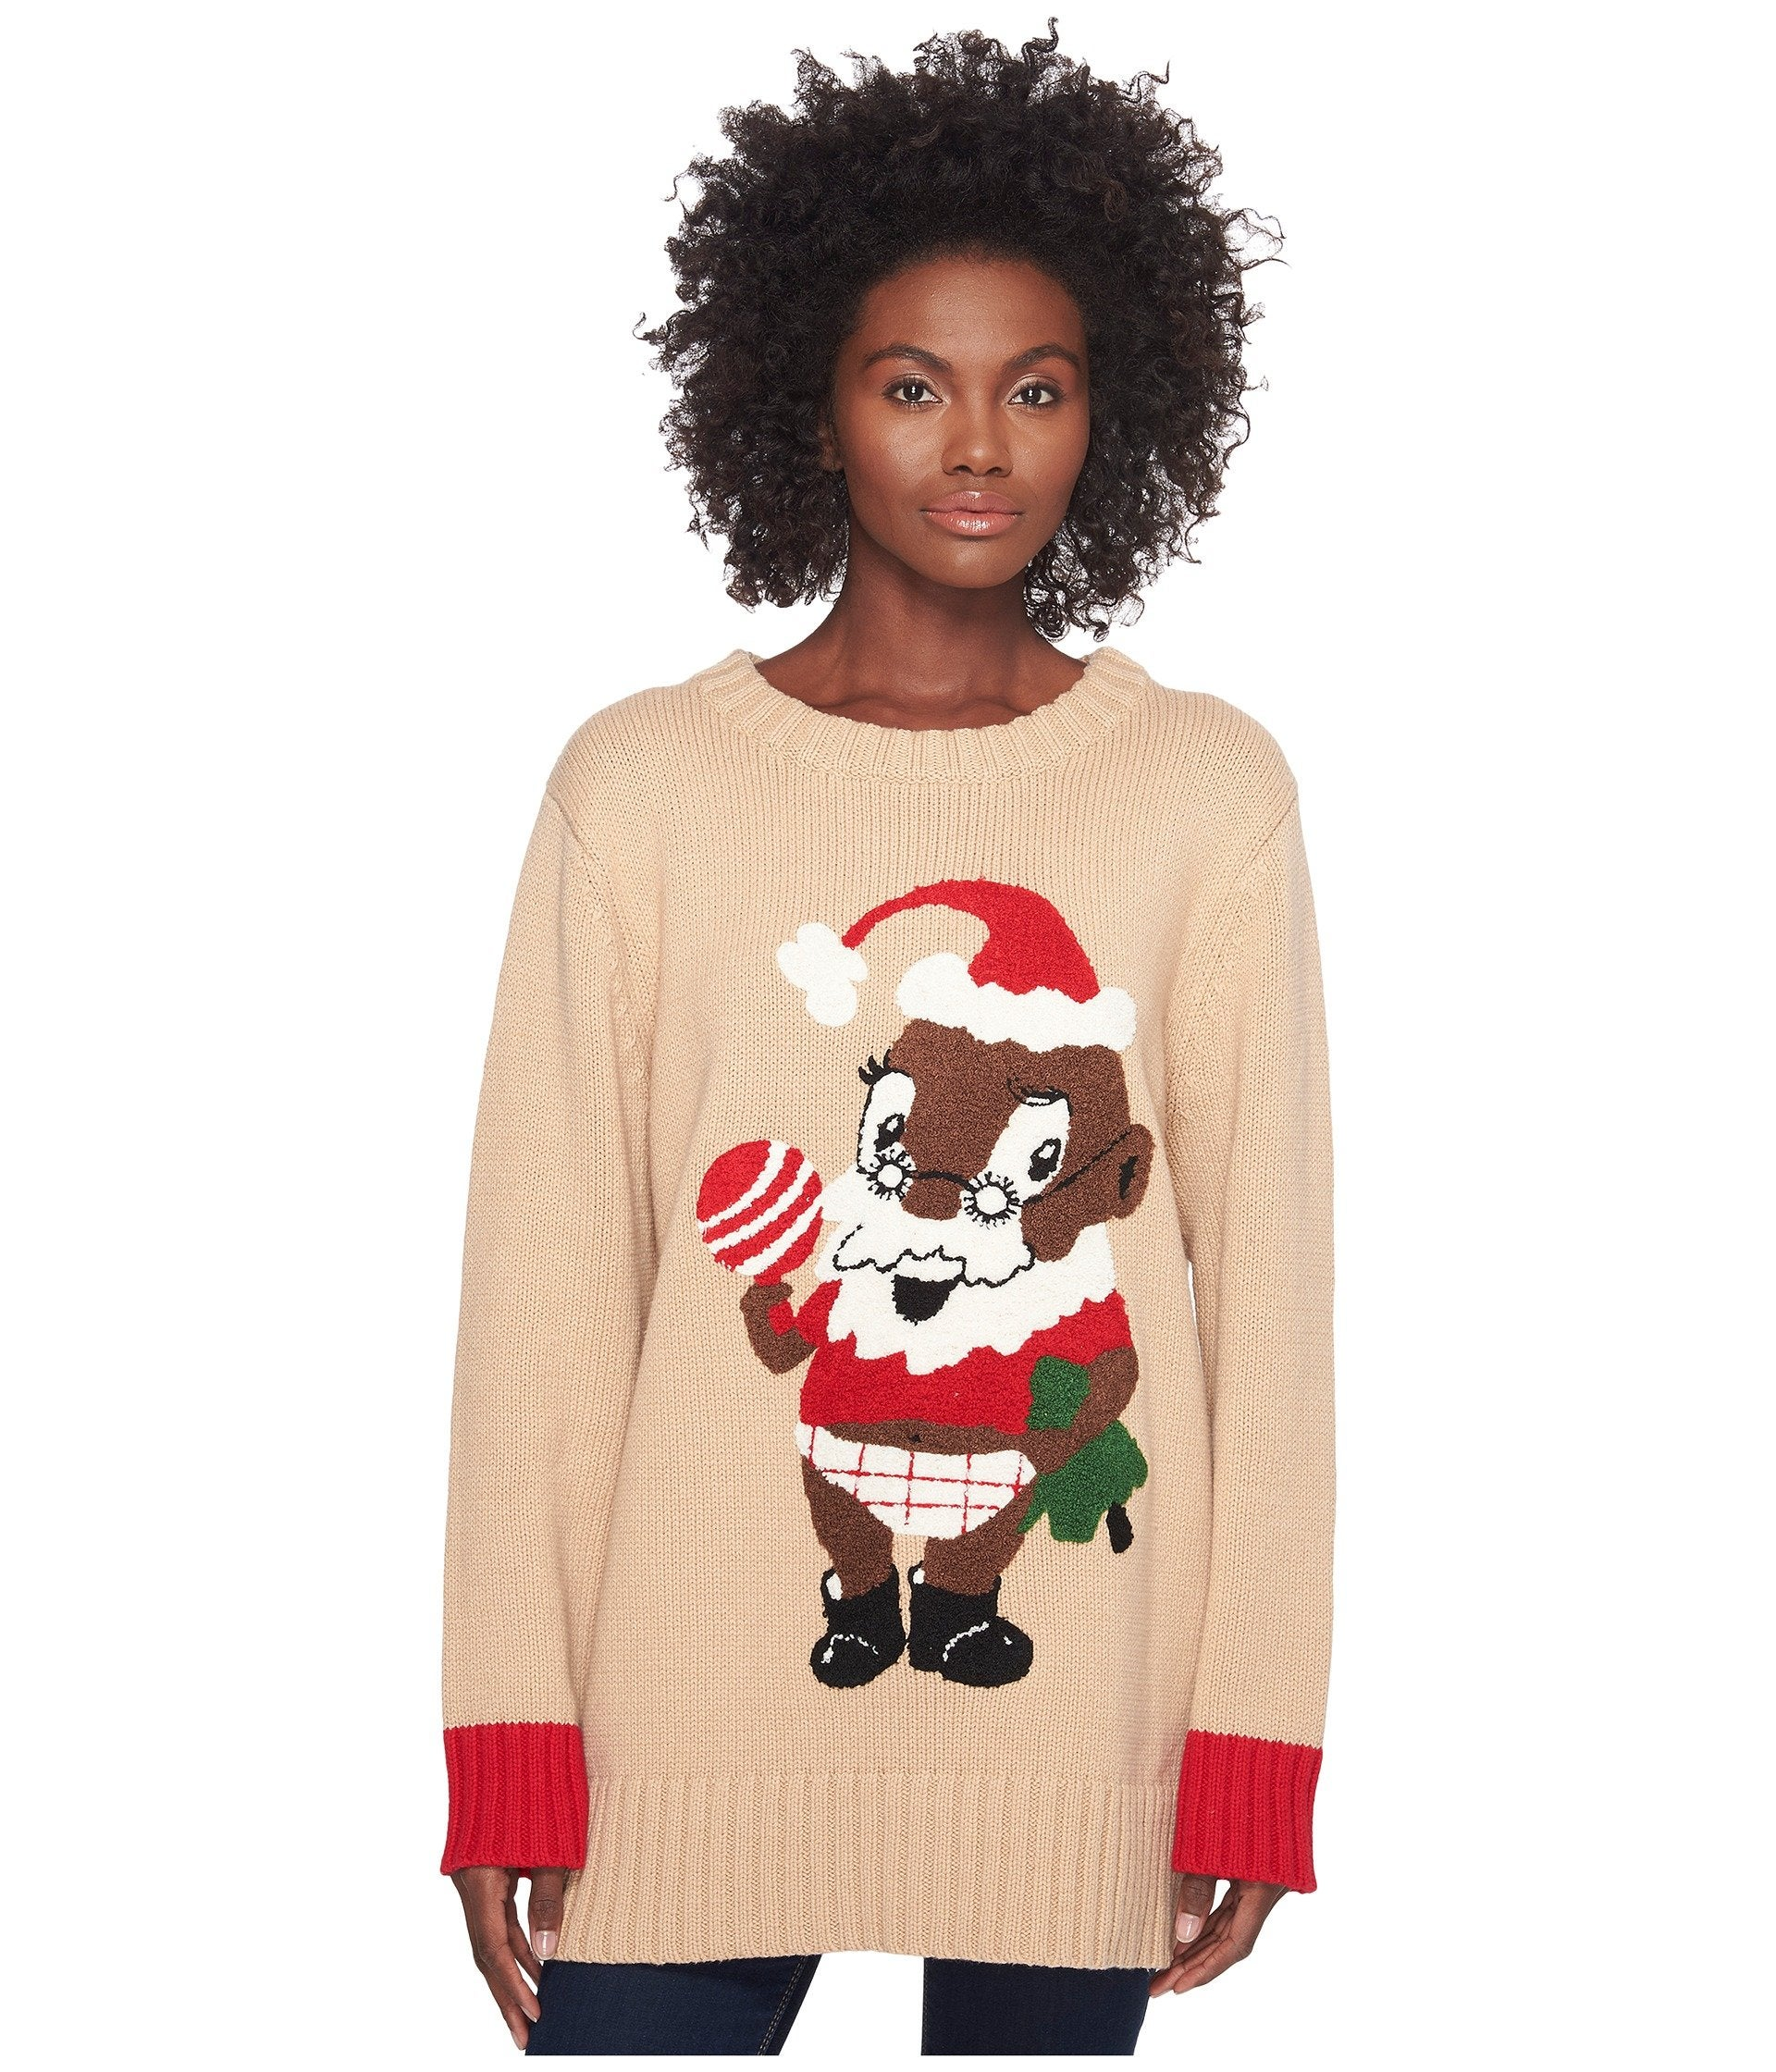 guys whoopi goldberg makes the best christmas sweaters seriously